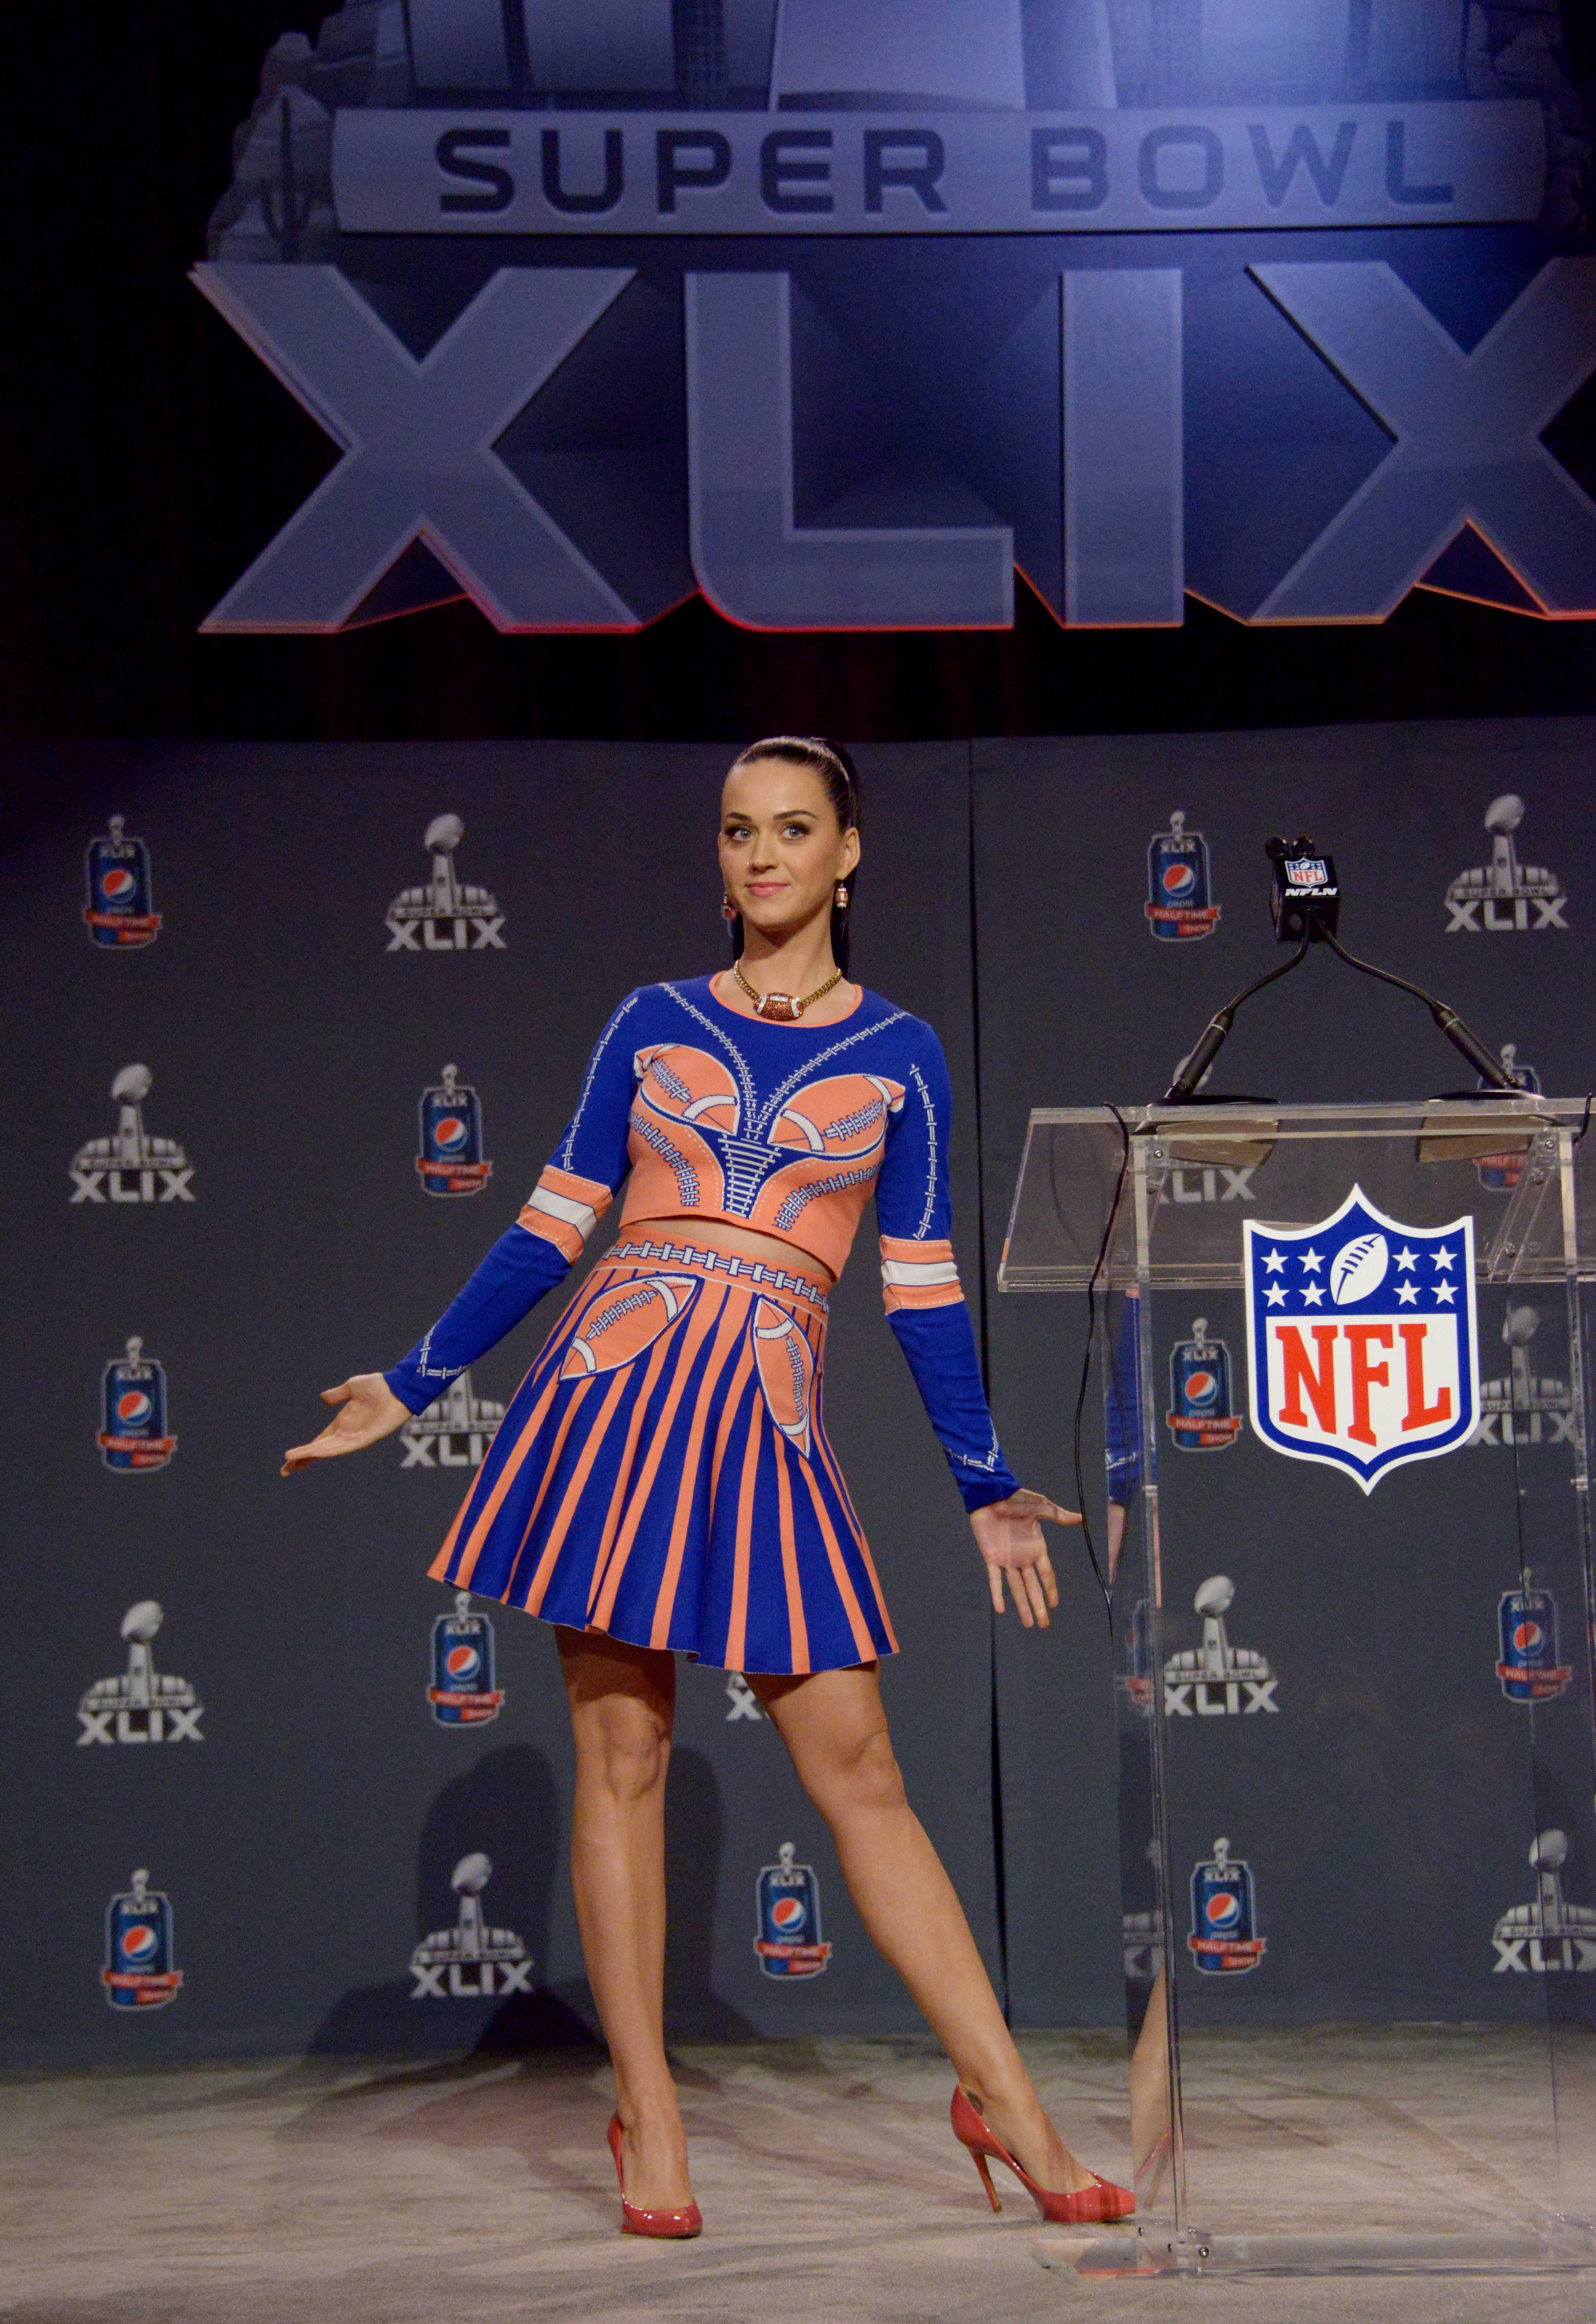 katy perry 2015 super bowl halftime performance